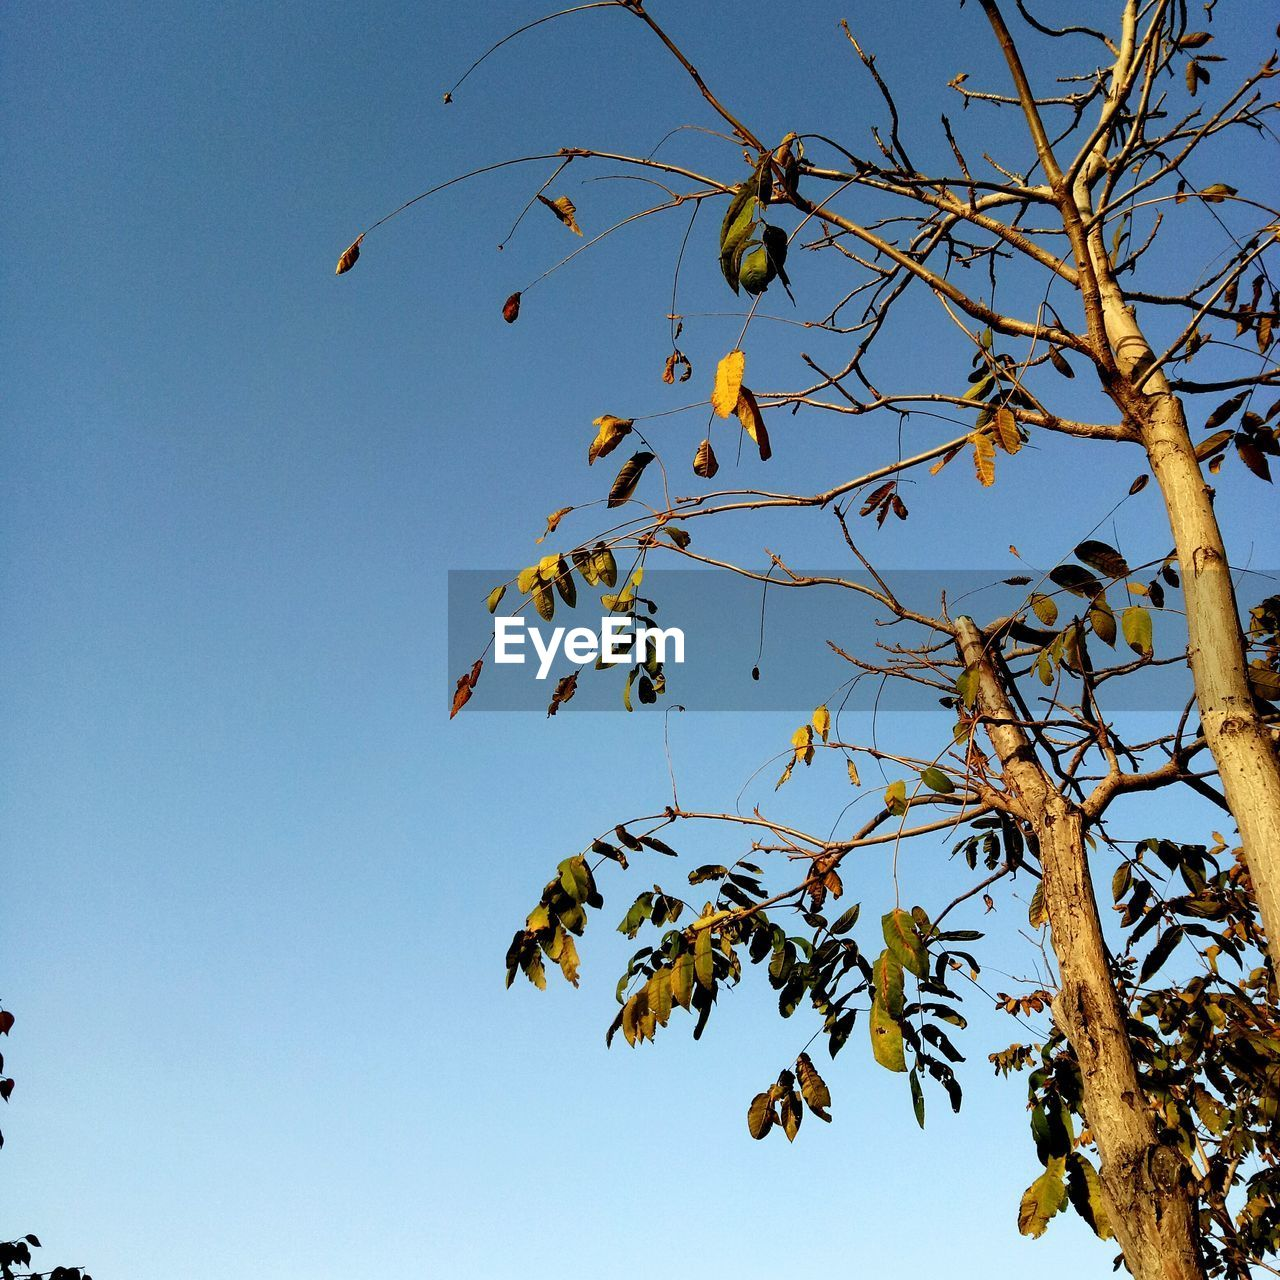 low angle view, branch, flying, clear sky, day, tree, nature, no people, outdoors, growth, blue, bird, animals in the wild, animal themes, beauty in nature, mid-air, sky, bare tree